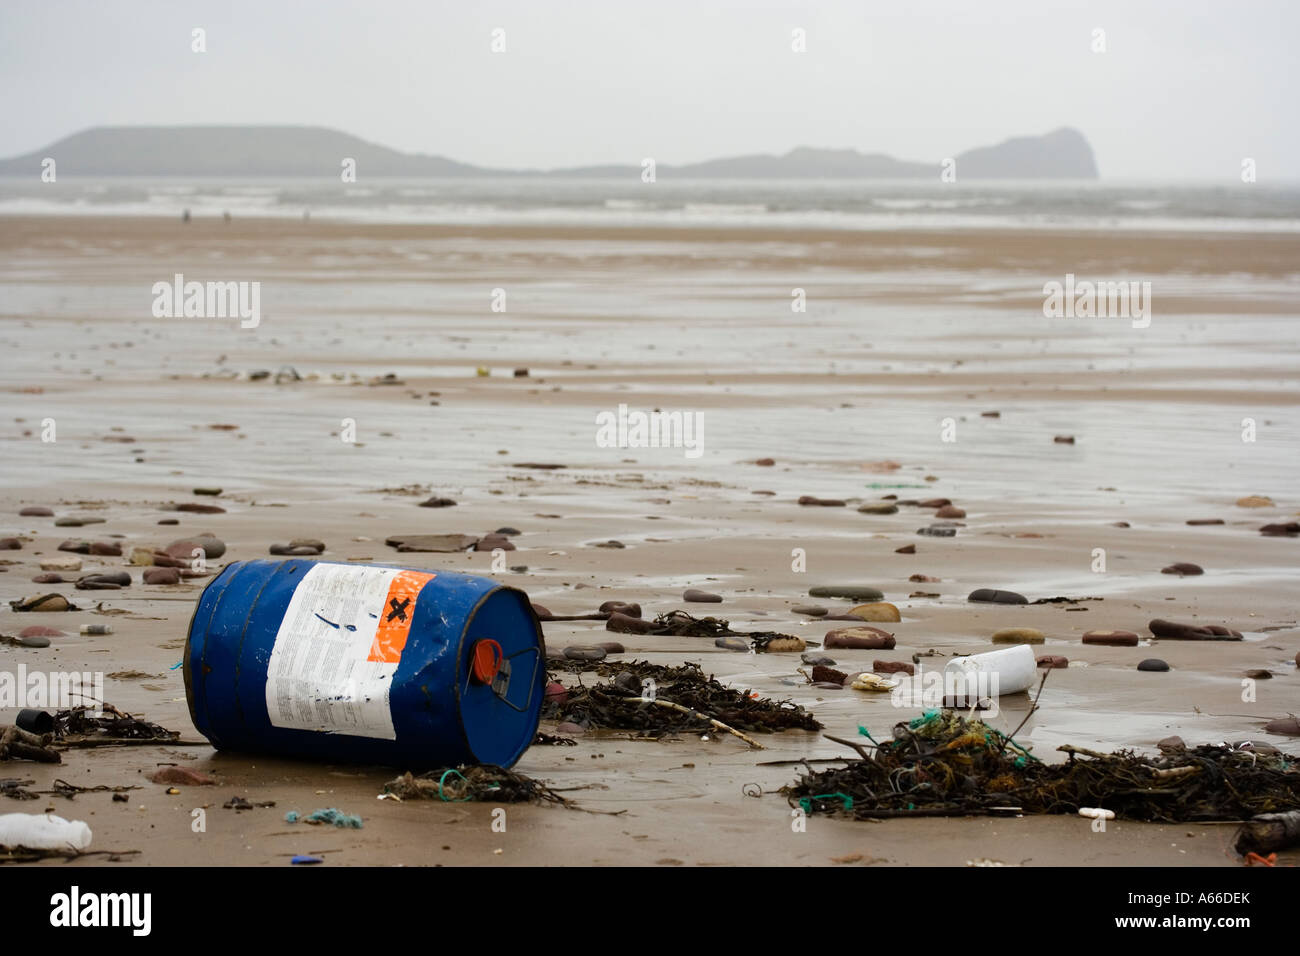 Toxic container washed onto beach - Stock Image